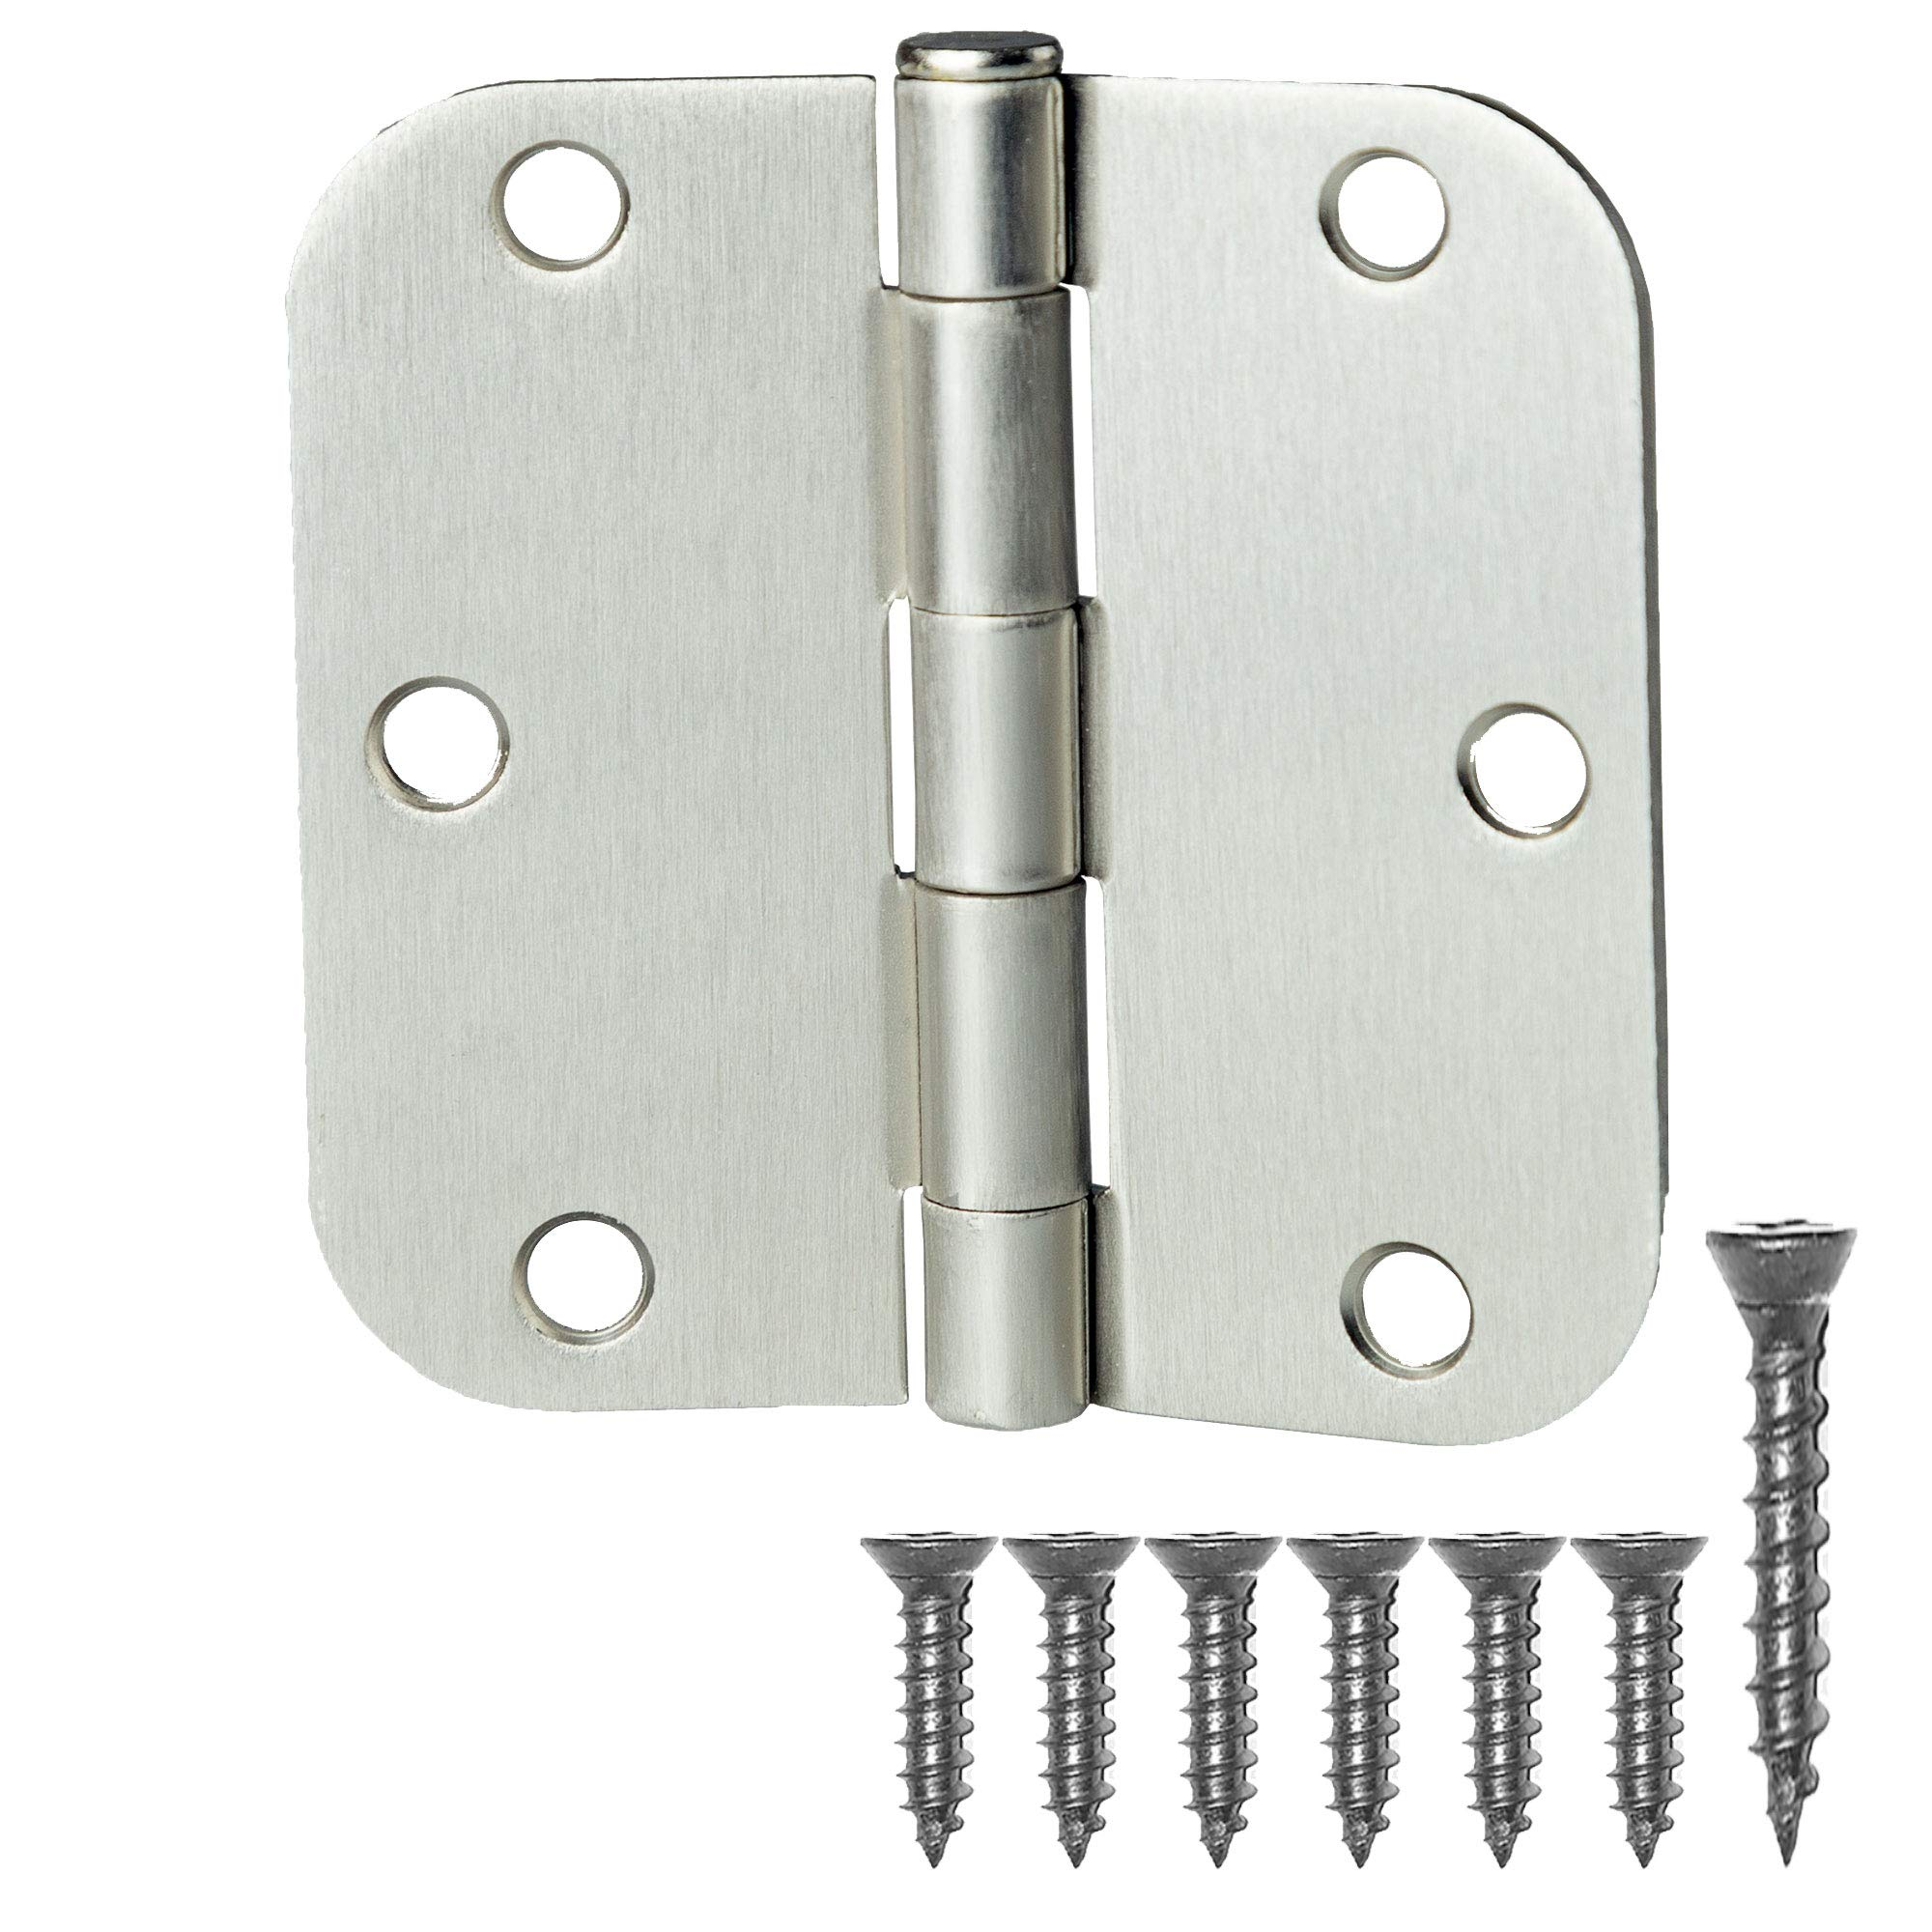 18 Pack of Door Hinges Satin Nickel - 3 ½'' x 3 ½'' Inch Interior Hinges for Doors Brushed Nickel with 5/8'' Radius Corners